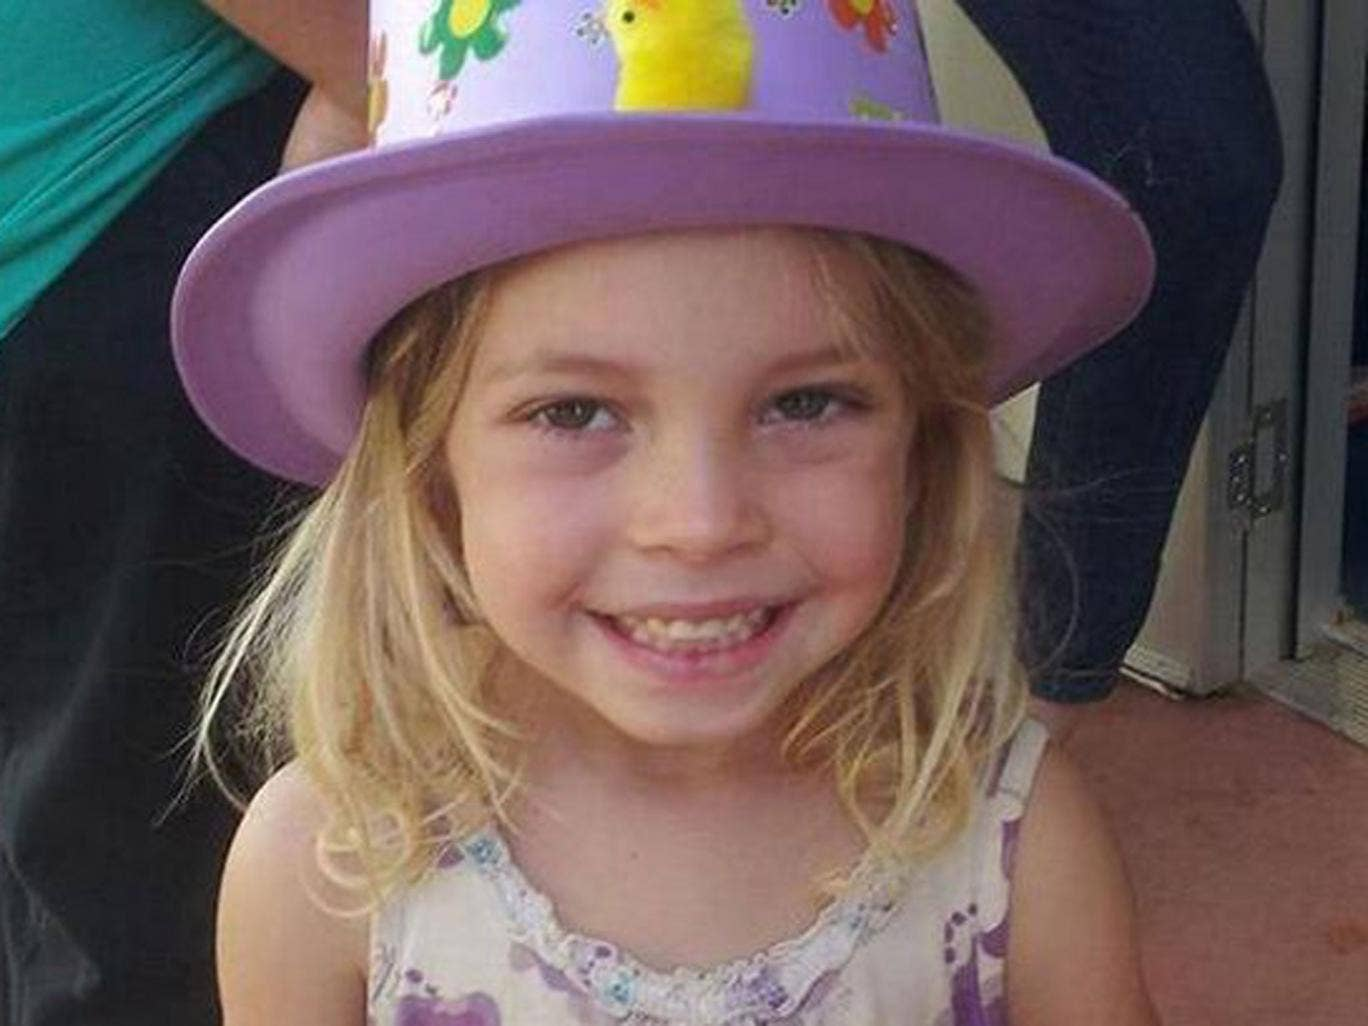 Officers searching for Chloe Campbell issued a 'child abduction alert' shortly after 9am local time, meaning a message was broadcast on local radio every 15 minutes.